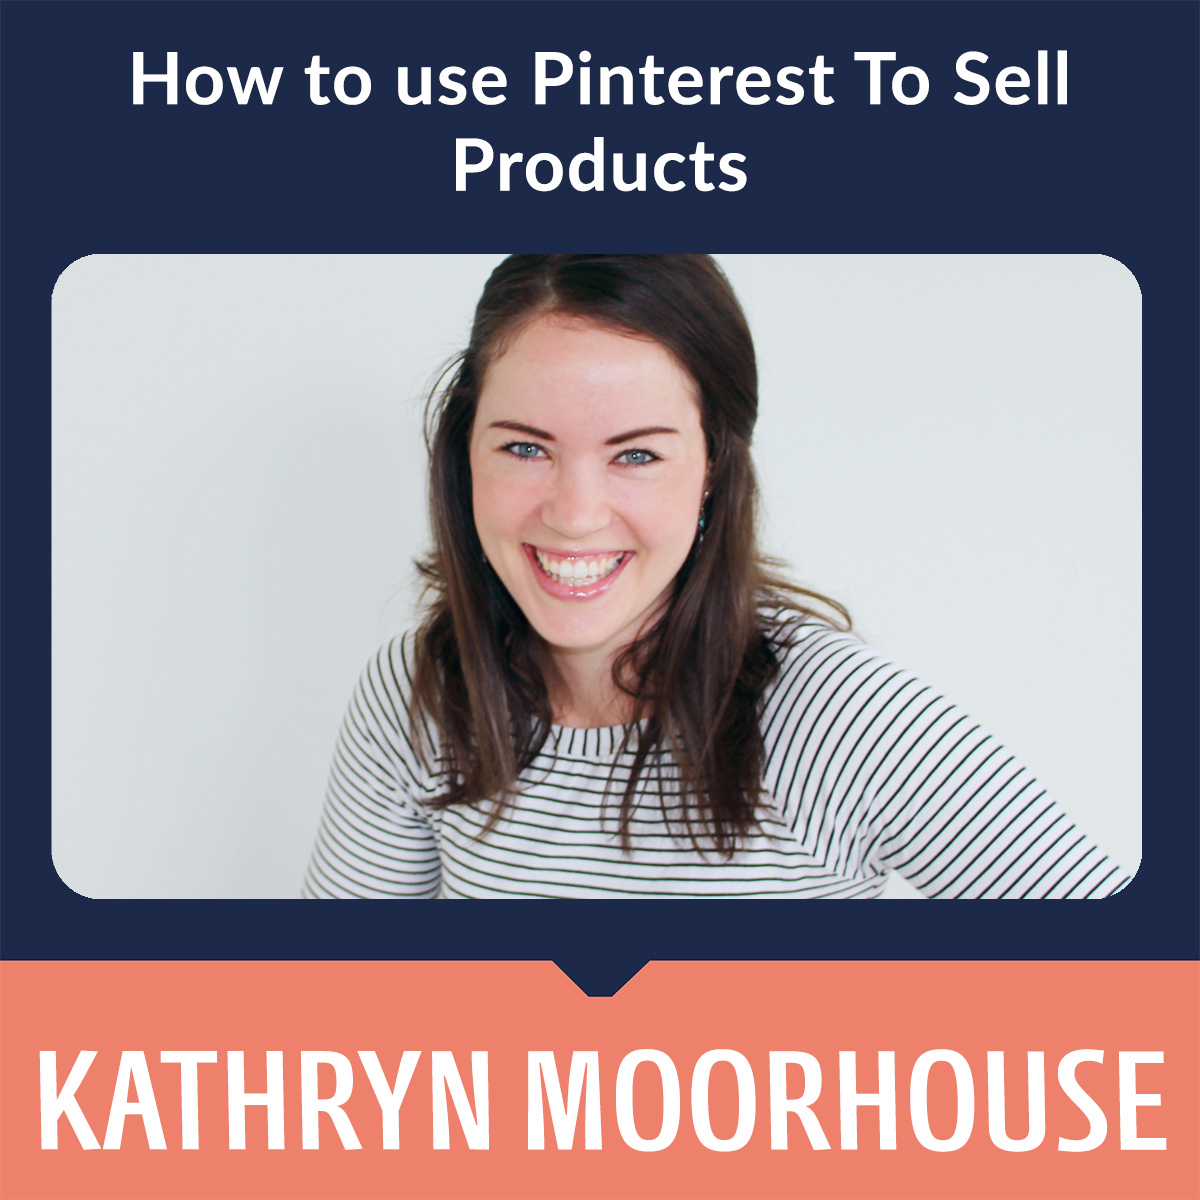 How to use Pinterest To Sell Products SQ